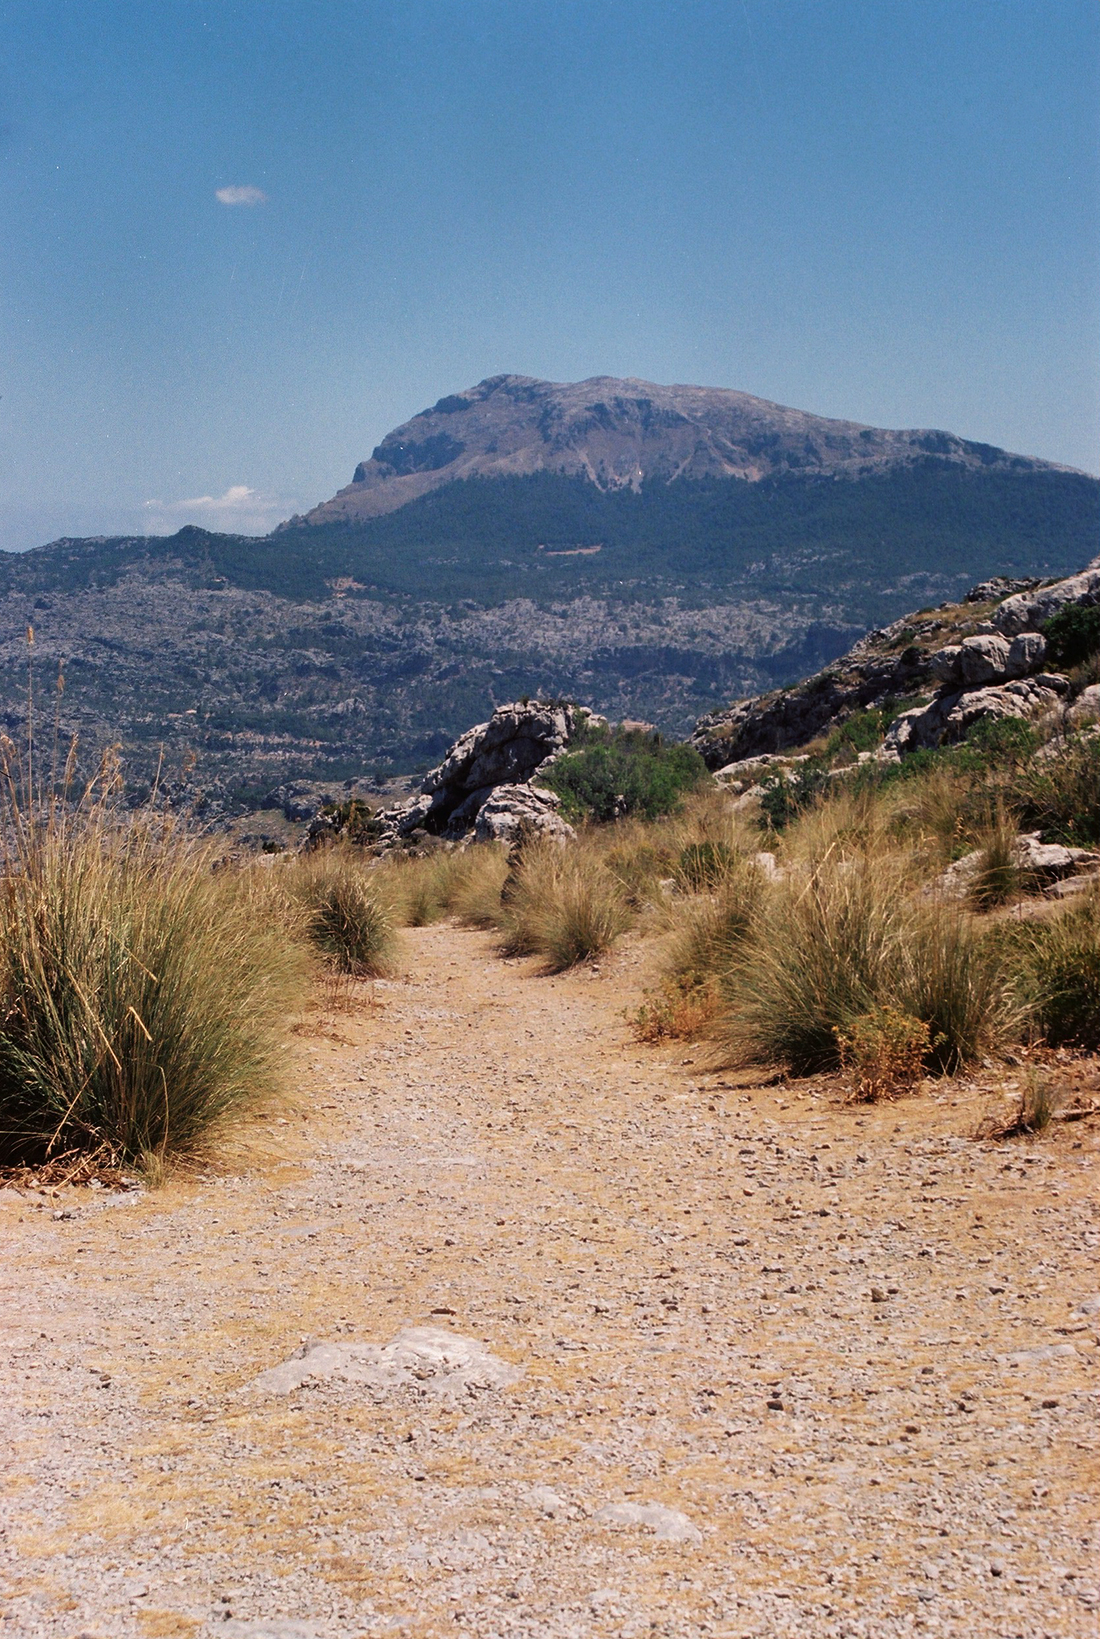 Highest mountain Puig Major in the Serra de Tramuntana mountain range on the island of Mallorca